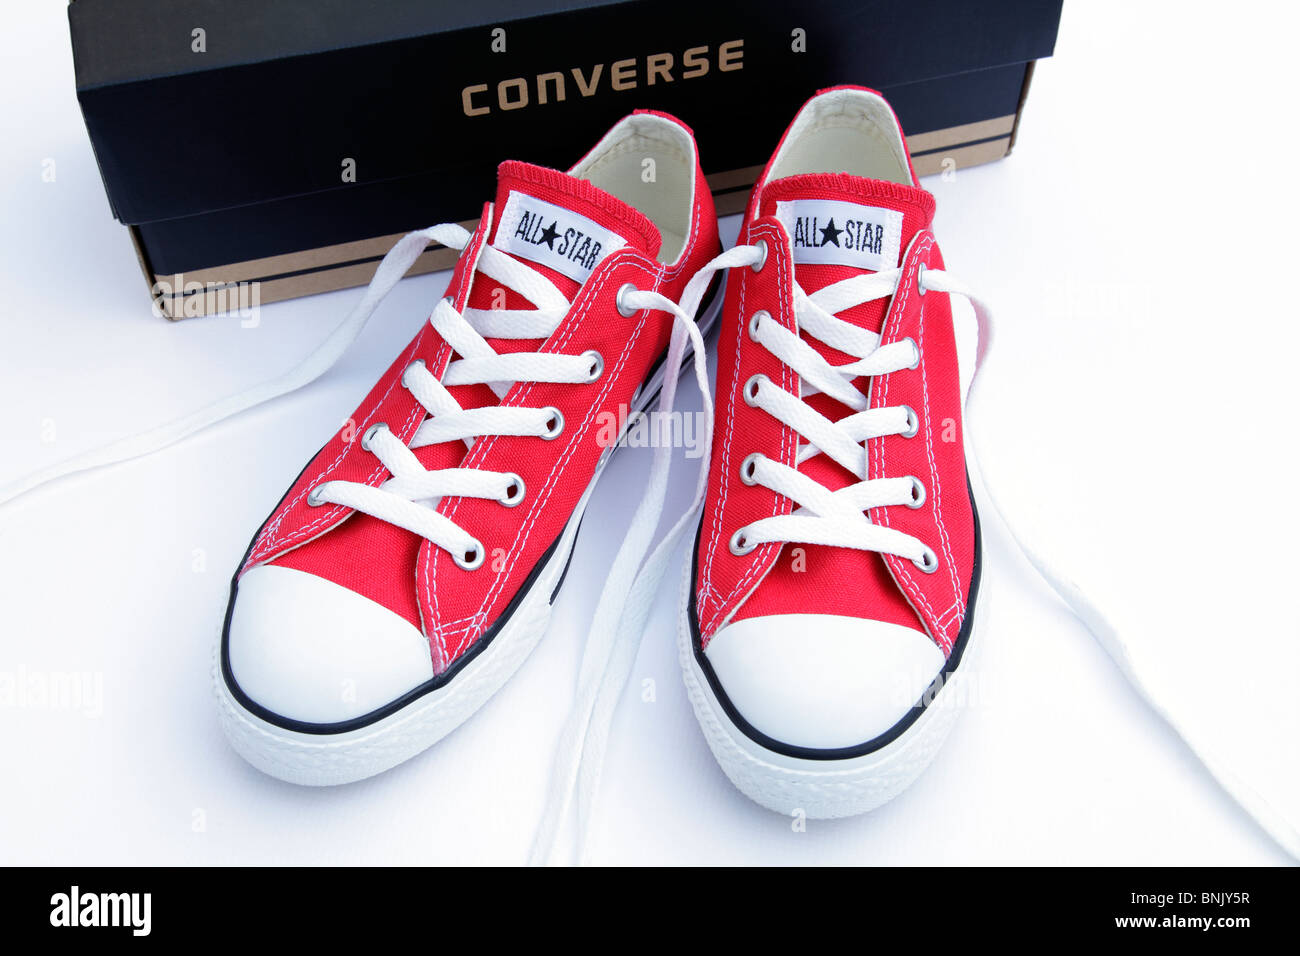 a81f40f60dd All Star Shoes Stock Photos   All Star Shoes Stock Images - Alamy